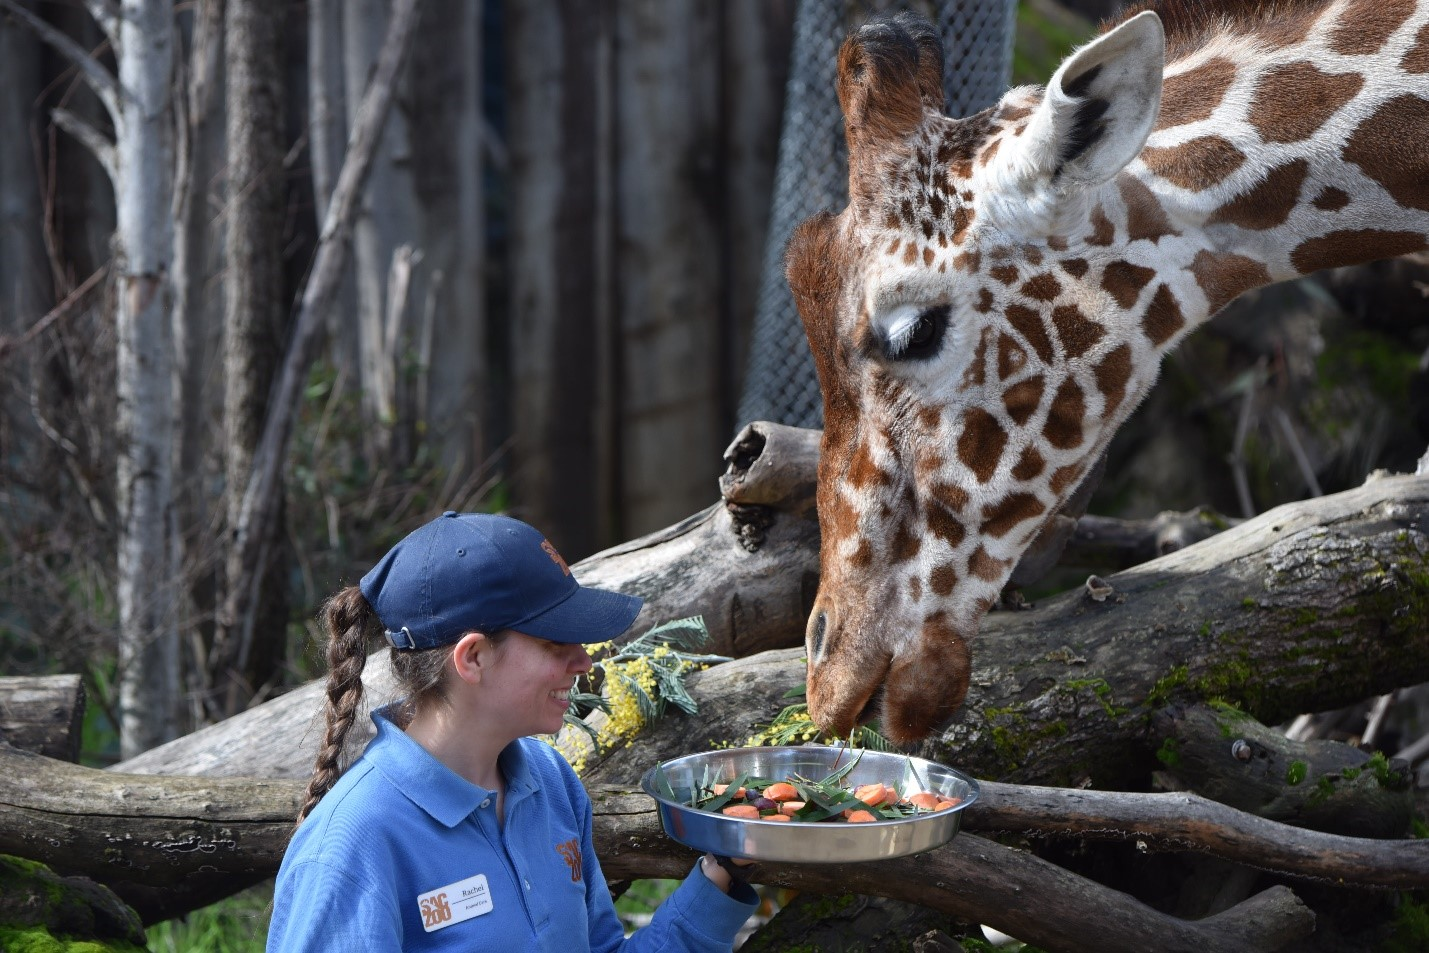 Val the giraffe is seen in a photo shared by the Sacramento Zoo on Facebook on Aug. 10, 2019.